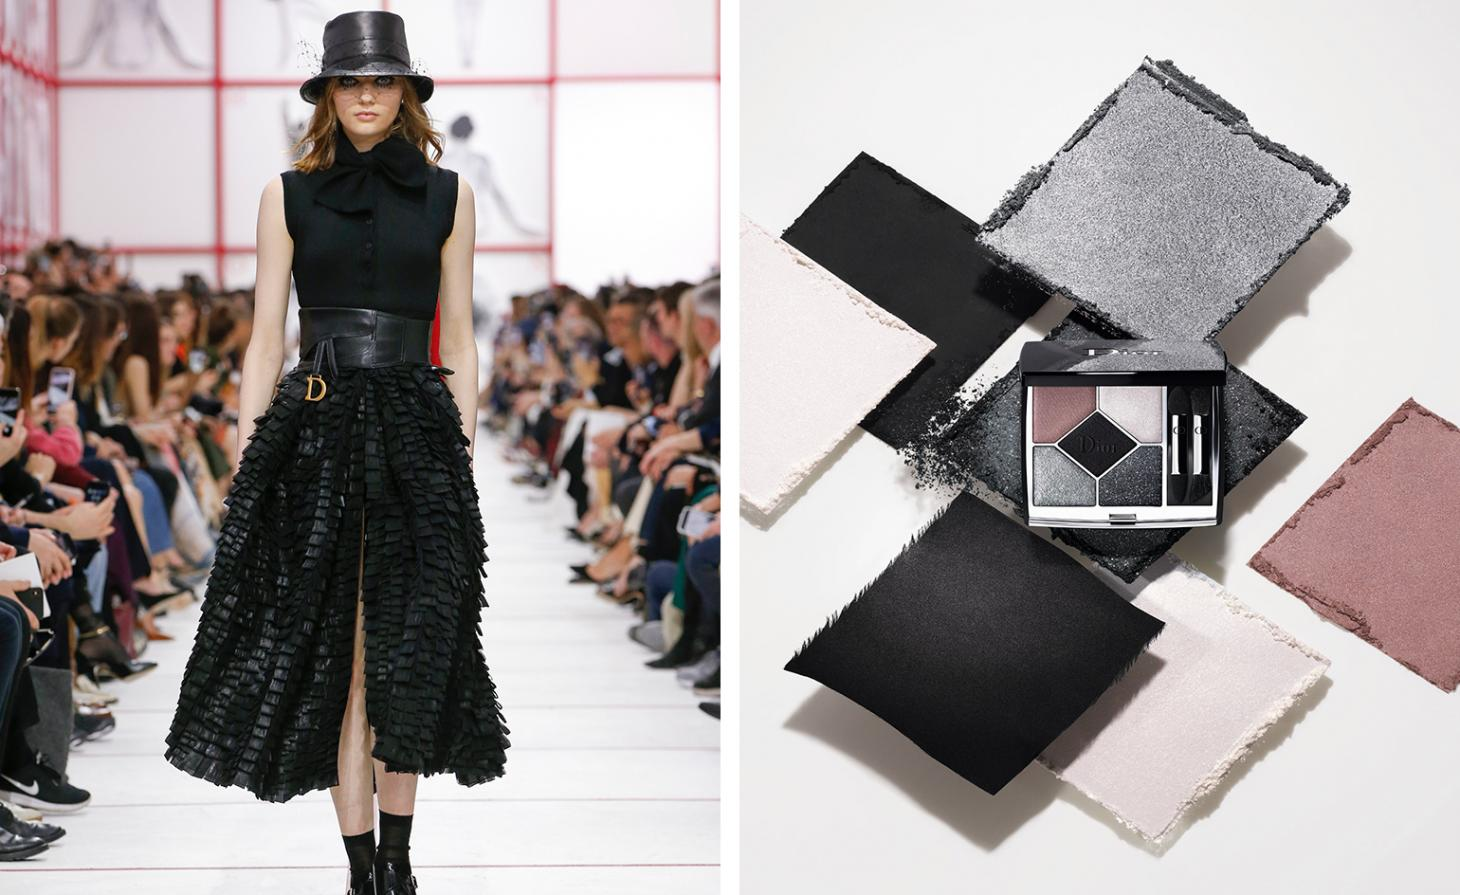 Dior 079 Black Bow Couleurs Couture Palette next to AW19 womenswear